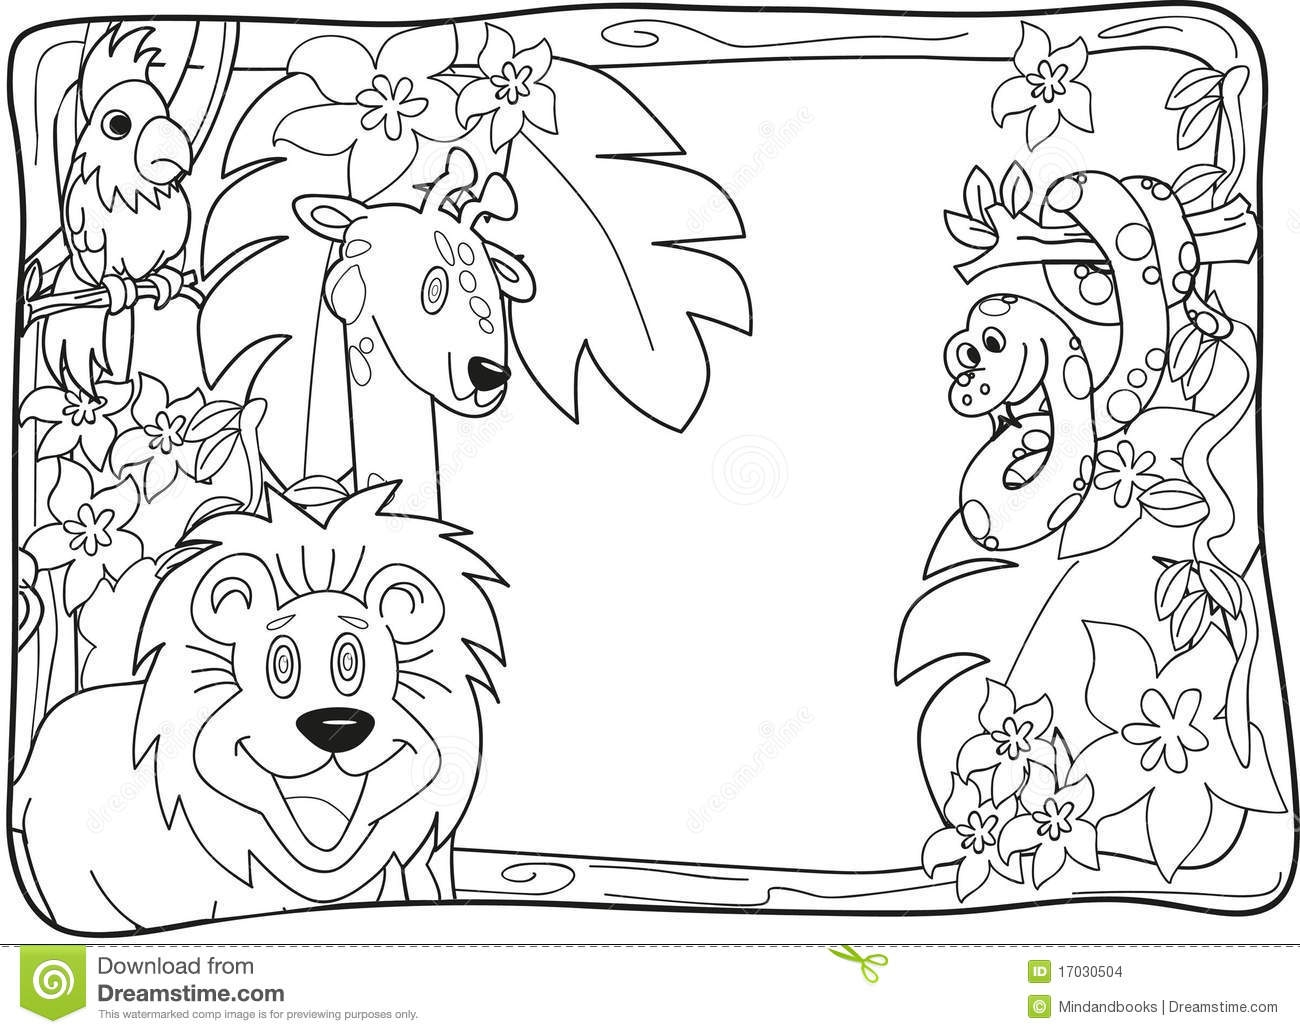 21 Magical Jungle Coloring Pages Pictures Free Coloring Pages